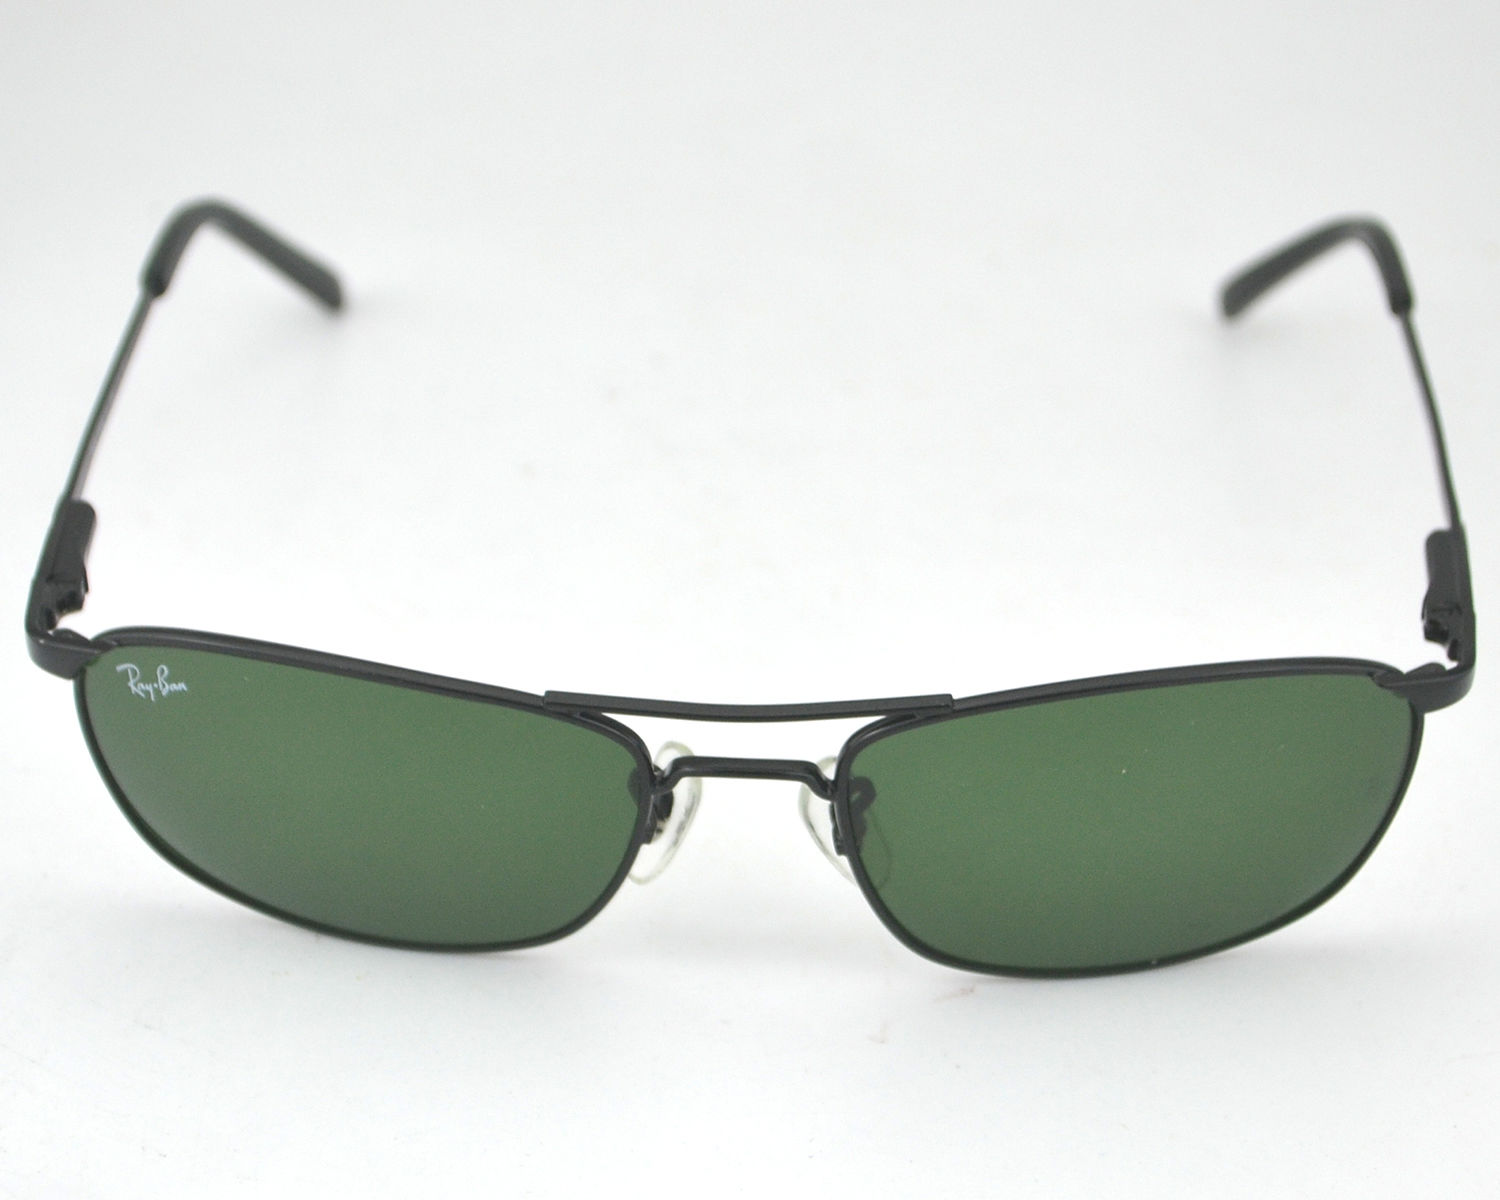 e51475b96e Ray-Ban RB3132 006 Black Frame Green Lens Male Sunglasses 56mm